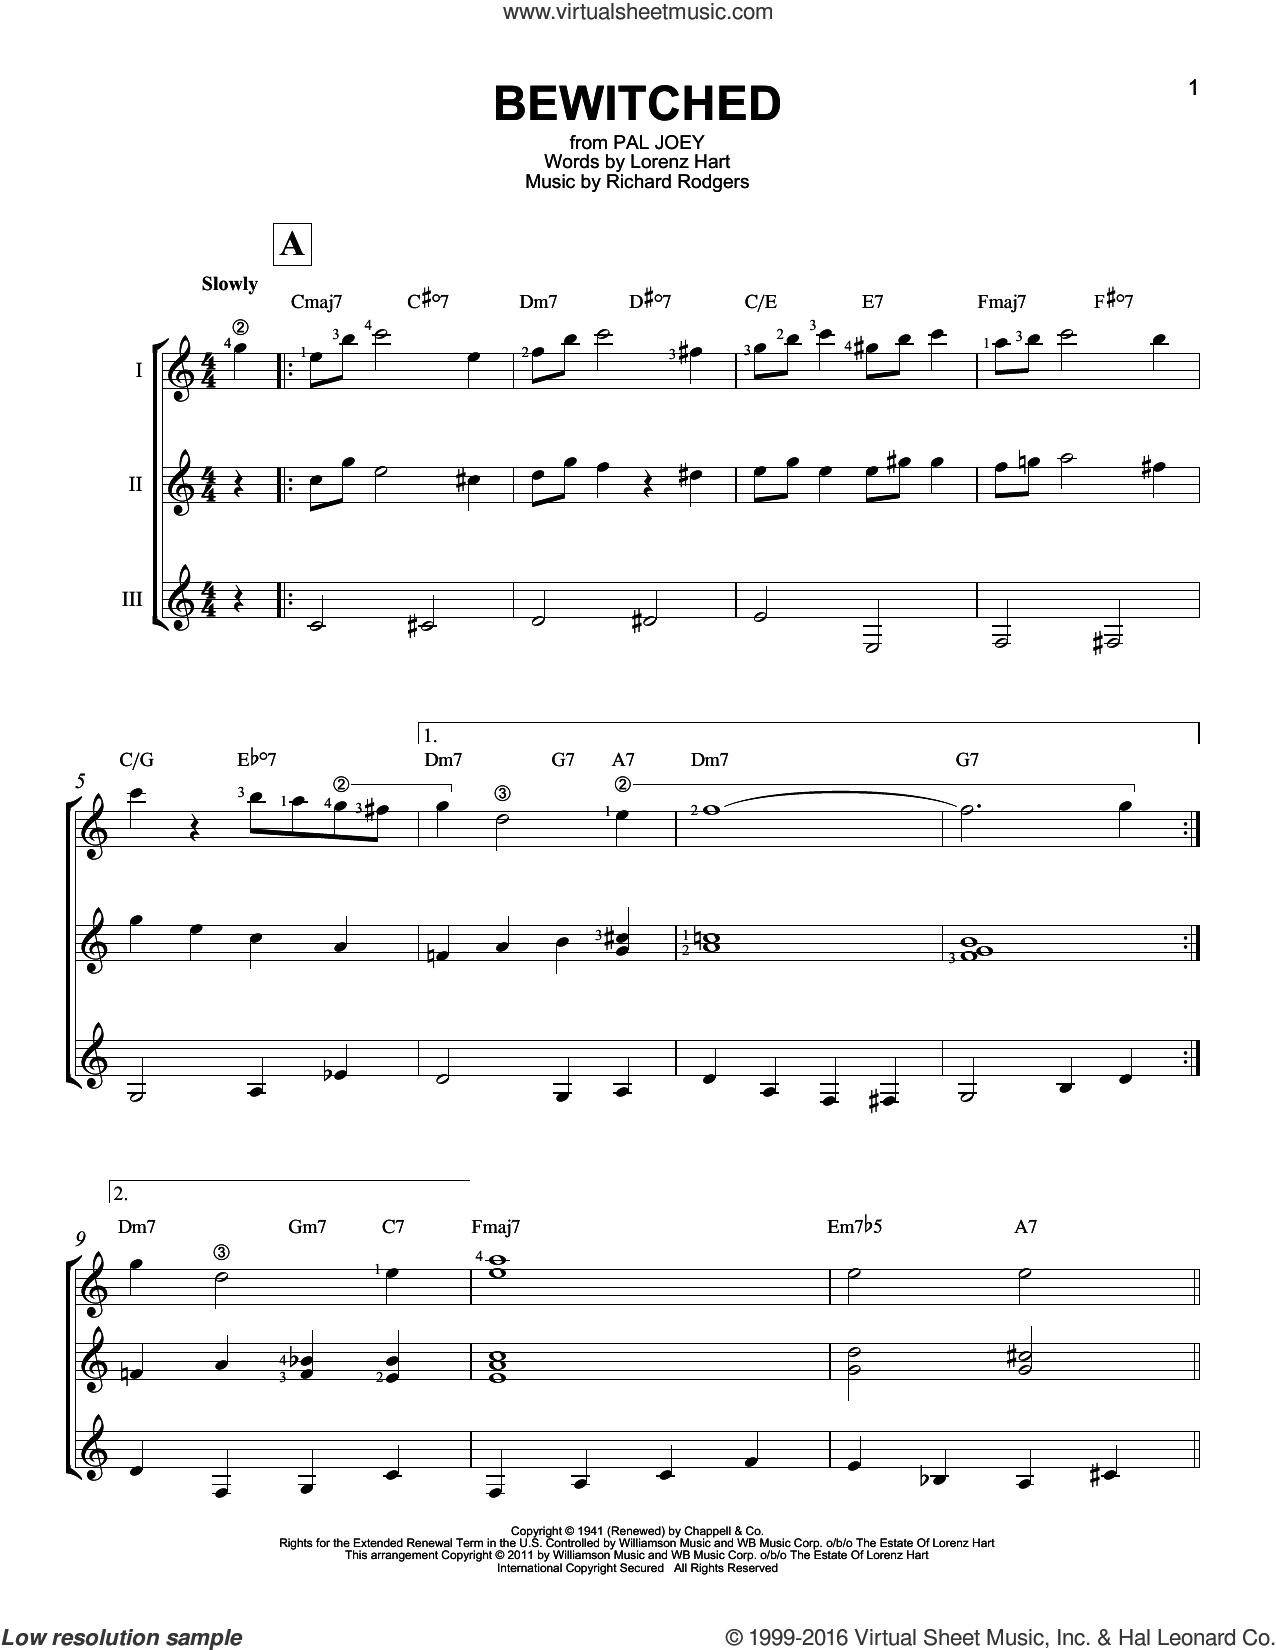 Bewitched sheet music for guitar ensemble by Richard Rodgers, Rodgers & Hart and Lorenz Hart. Score Image Preview.